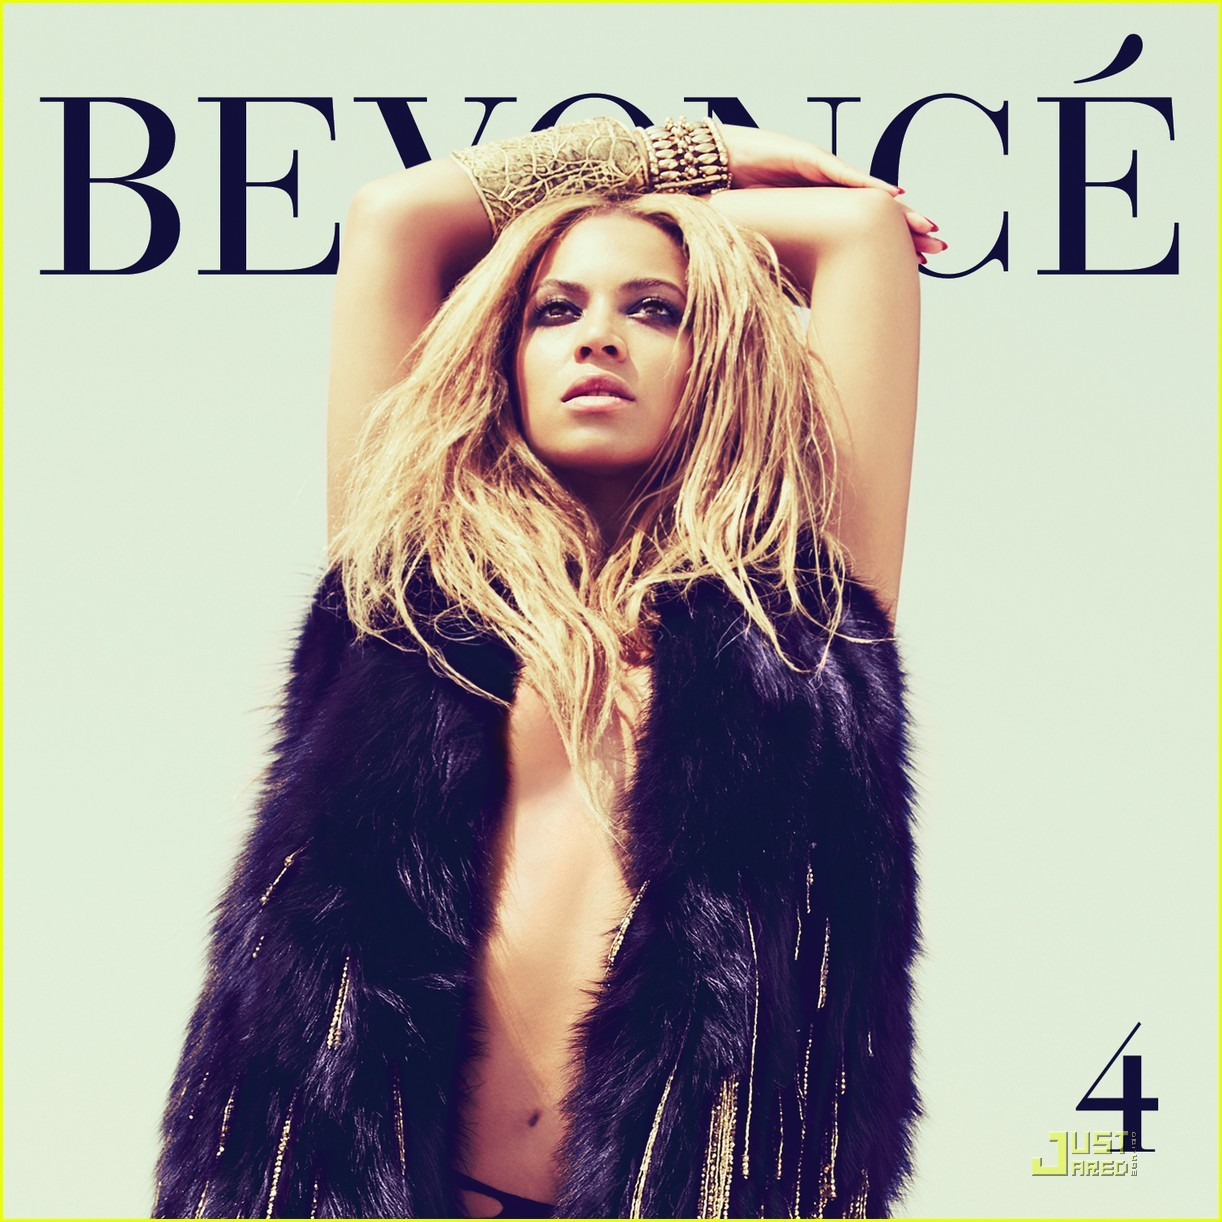 beyonce-4-album-artwork.JPG